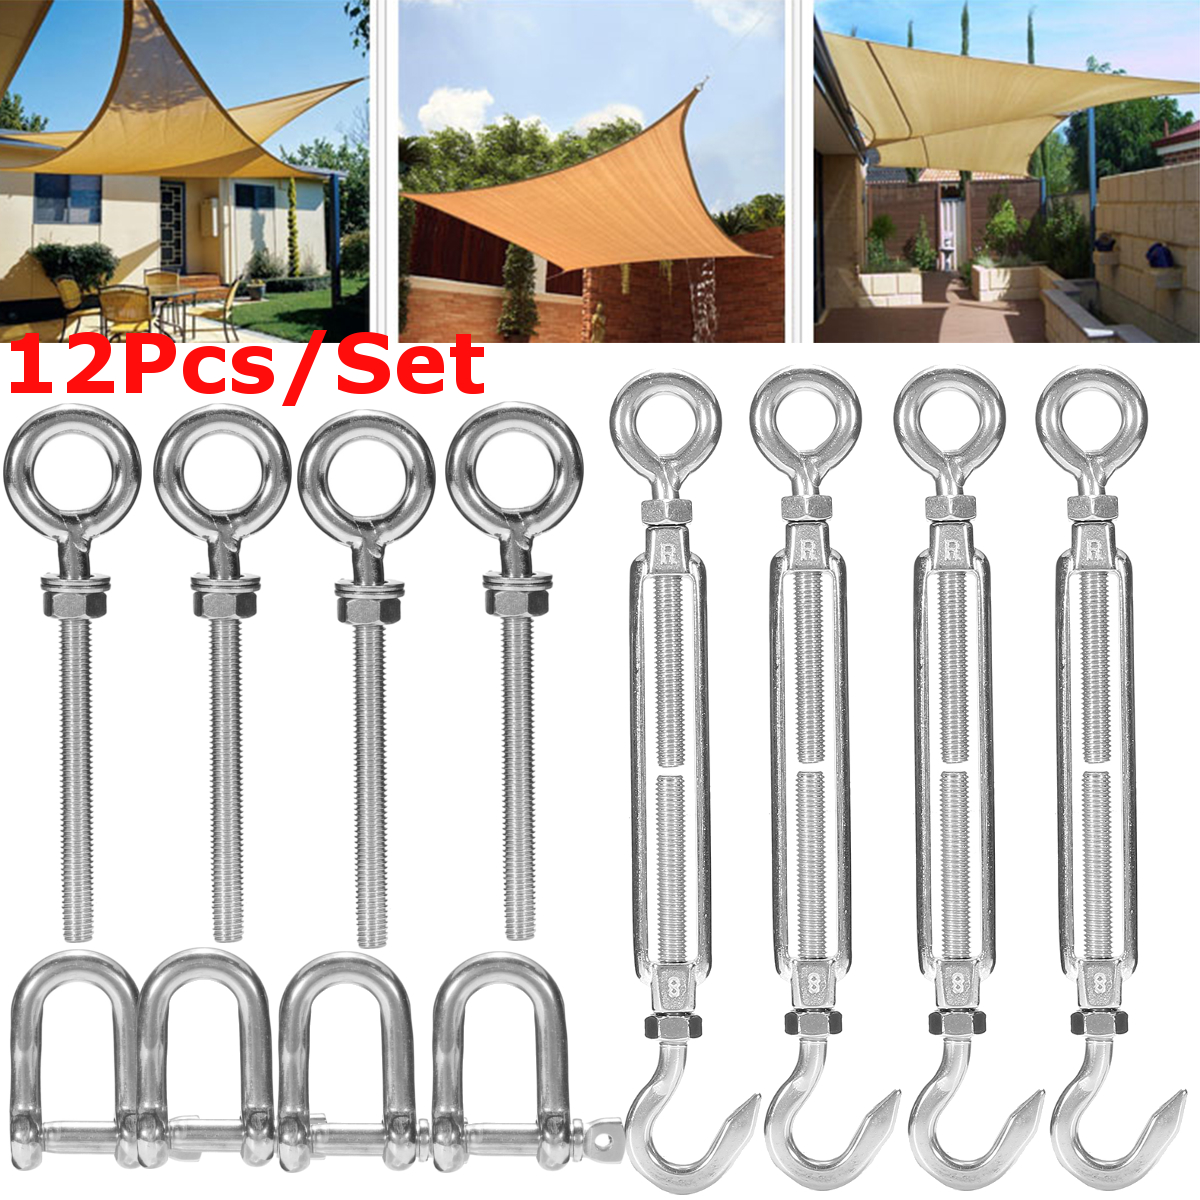 12X Stainless Steel Sun Sail Shade Canopy Fixing Fittings Hardware Accessory Kit